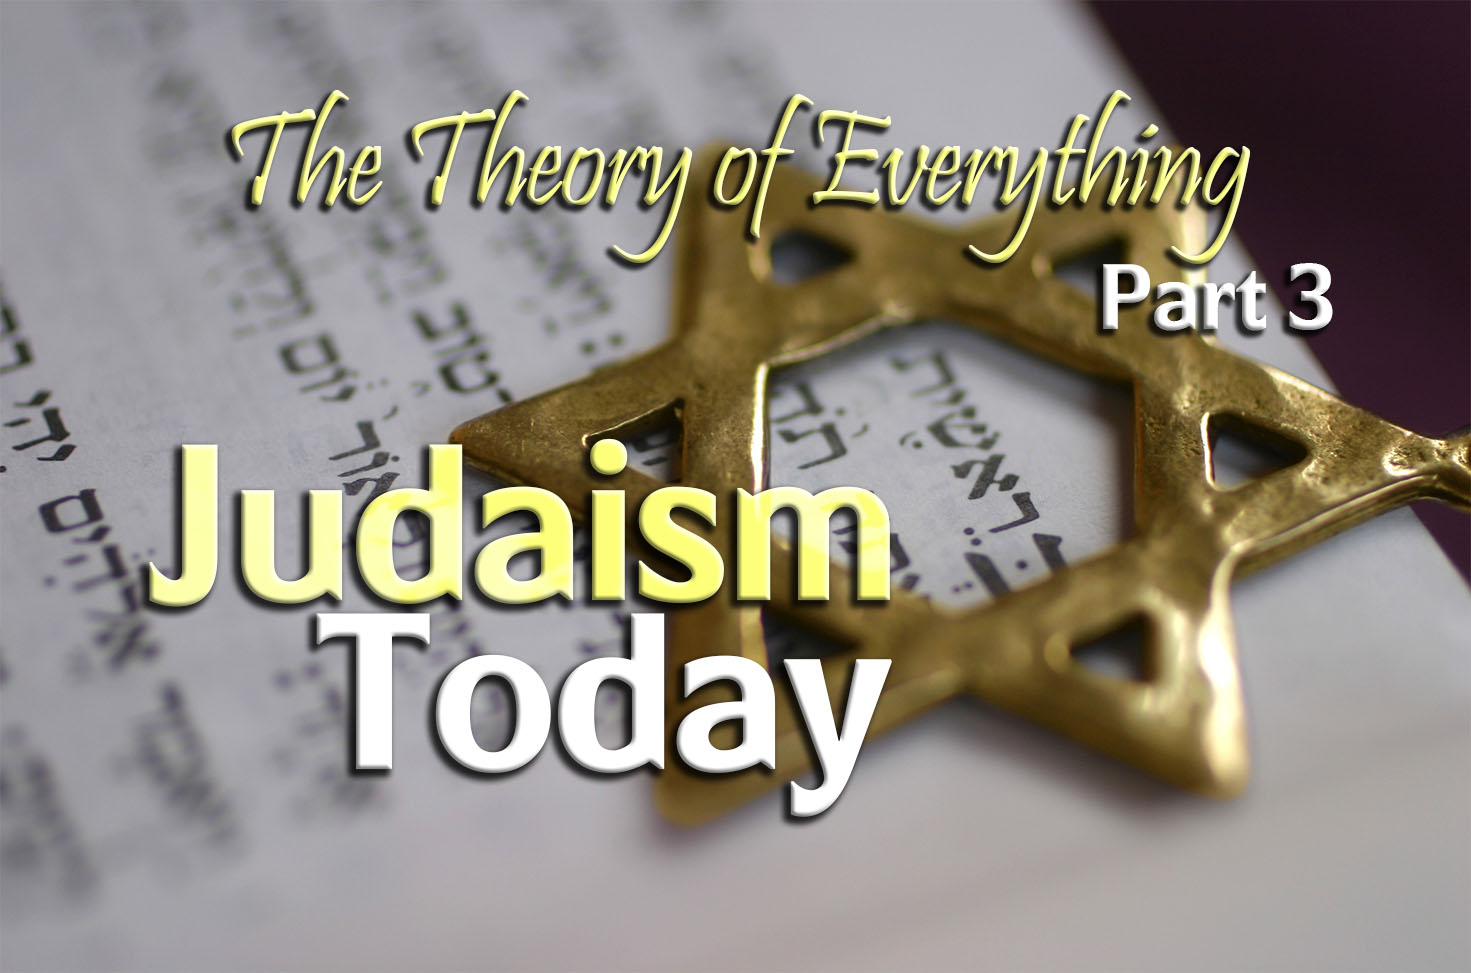 Photo of The Theory of Everything – Part 3 – Judaism Today